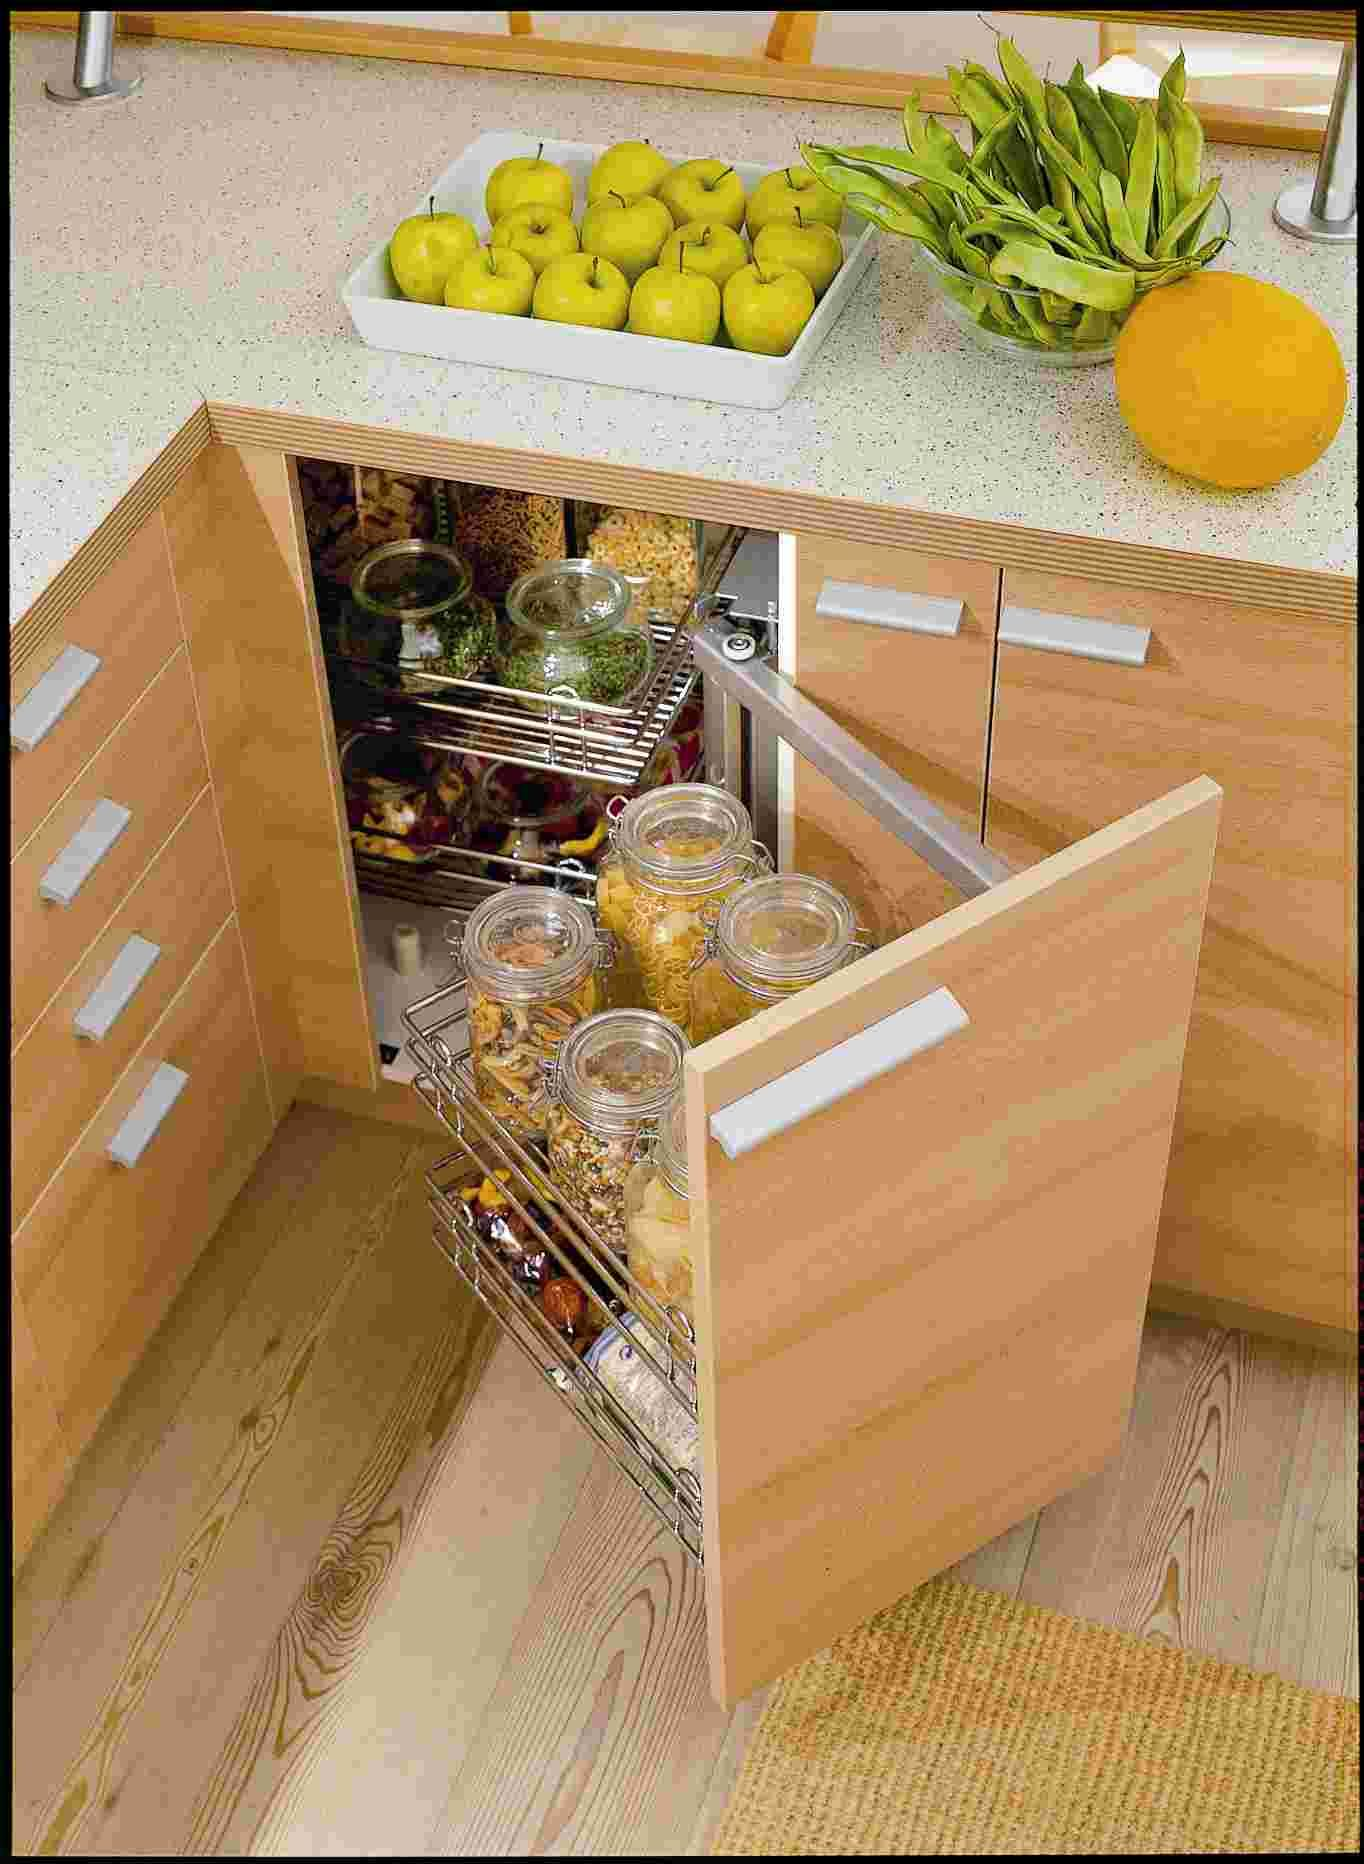 ordinary Kitchen Cabinets Trolleys Pictures #7: Kitchen Inspiration Cabinets With Postforming Shutters Picture listed in: